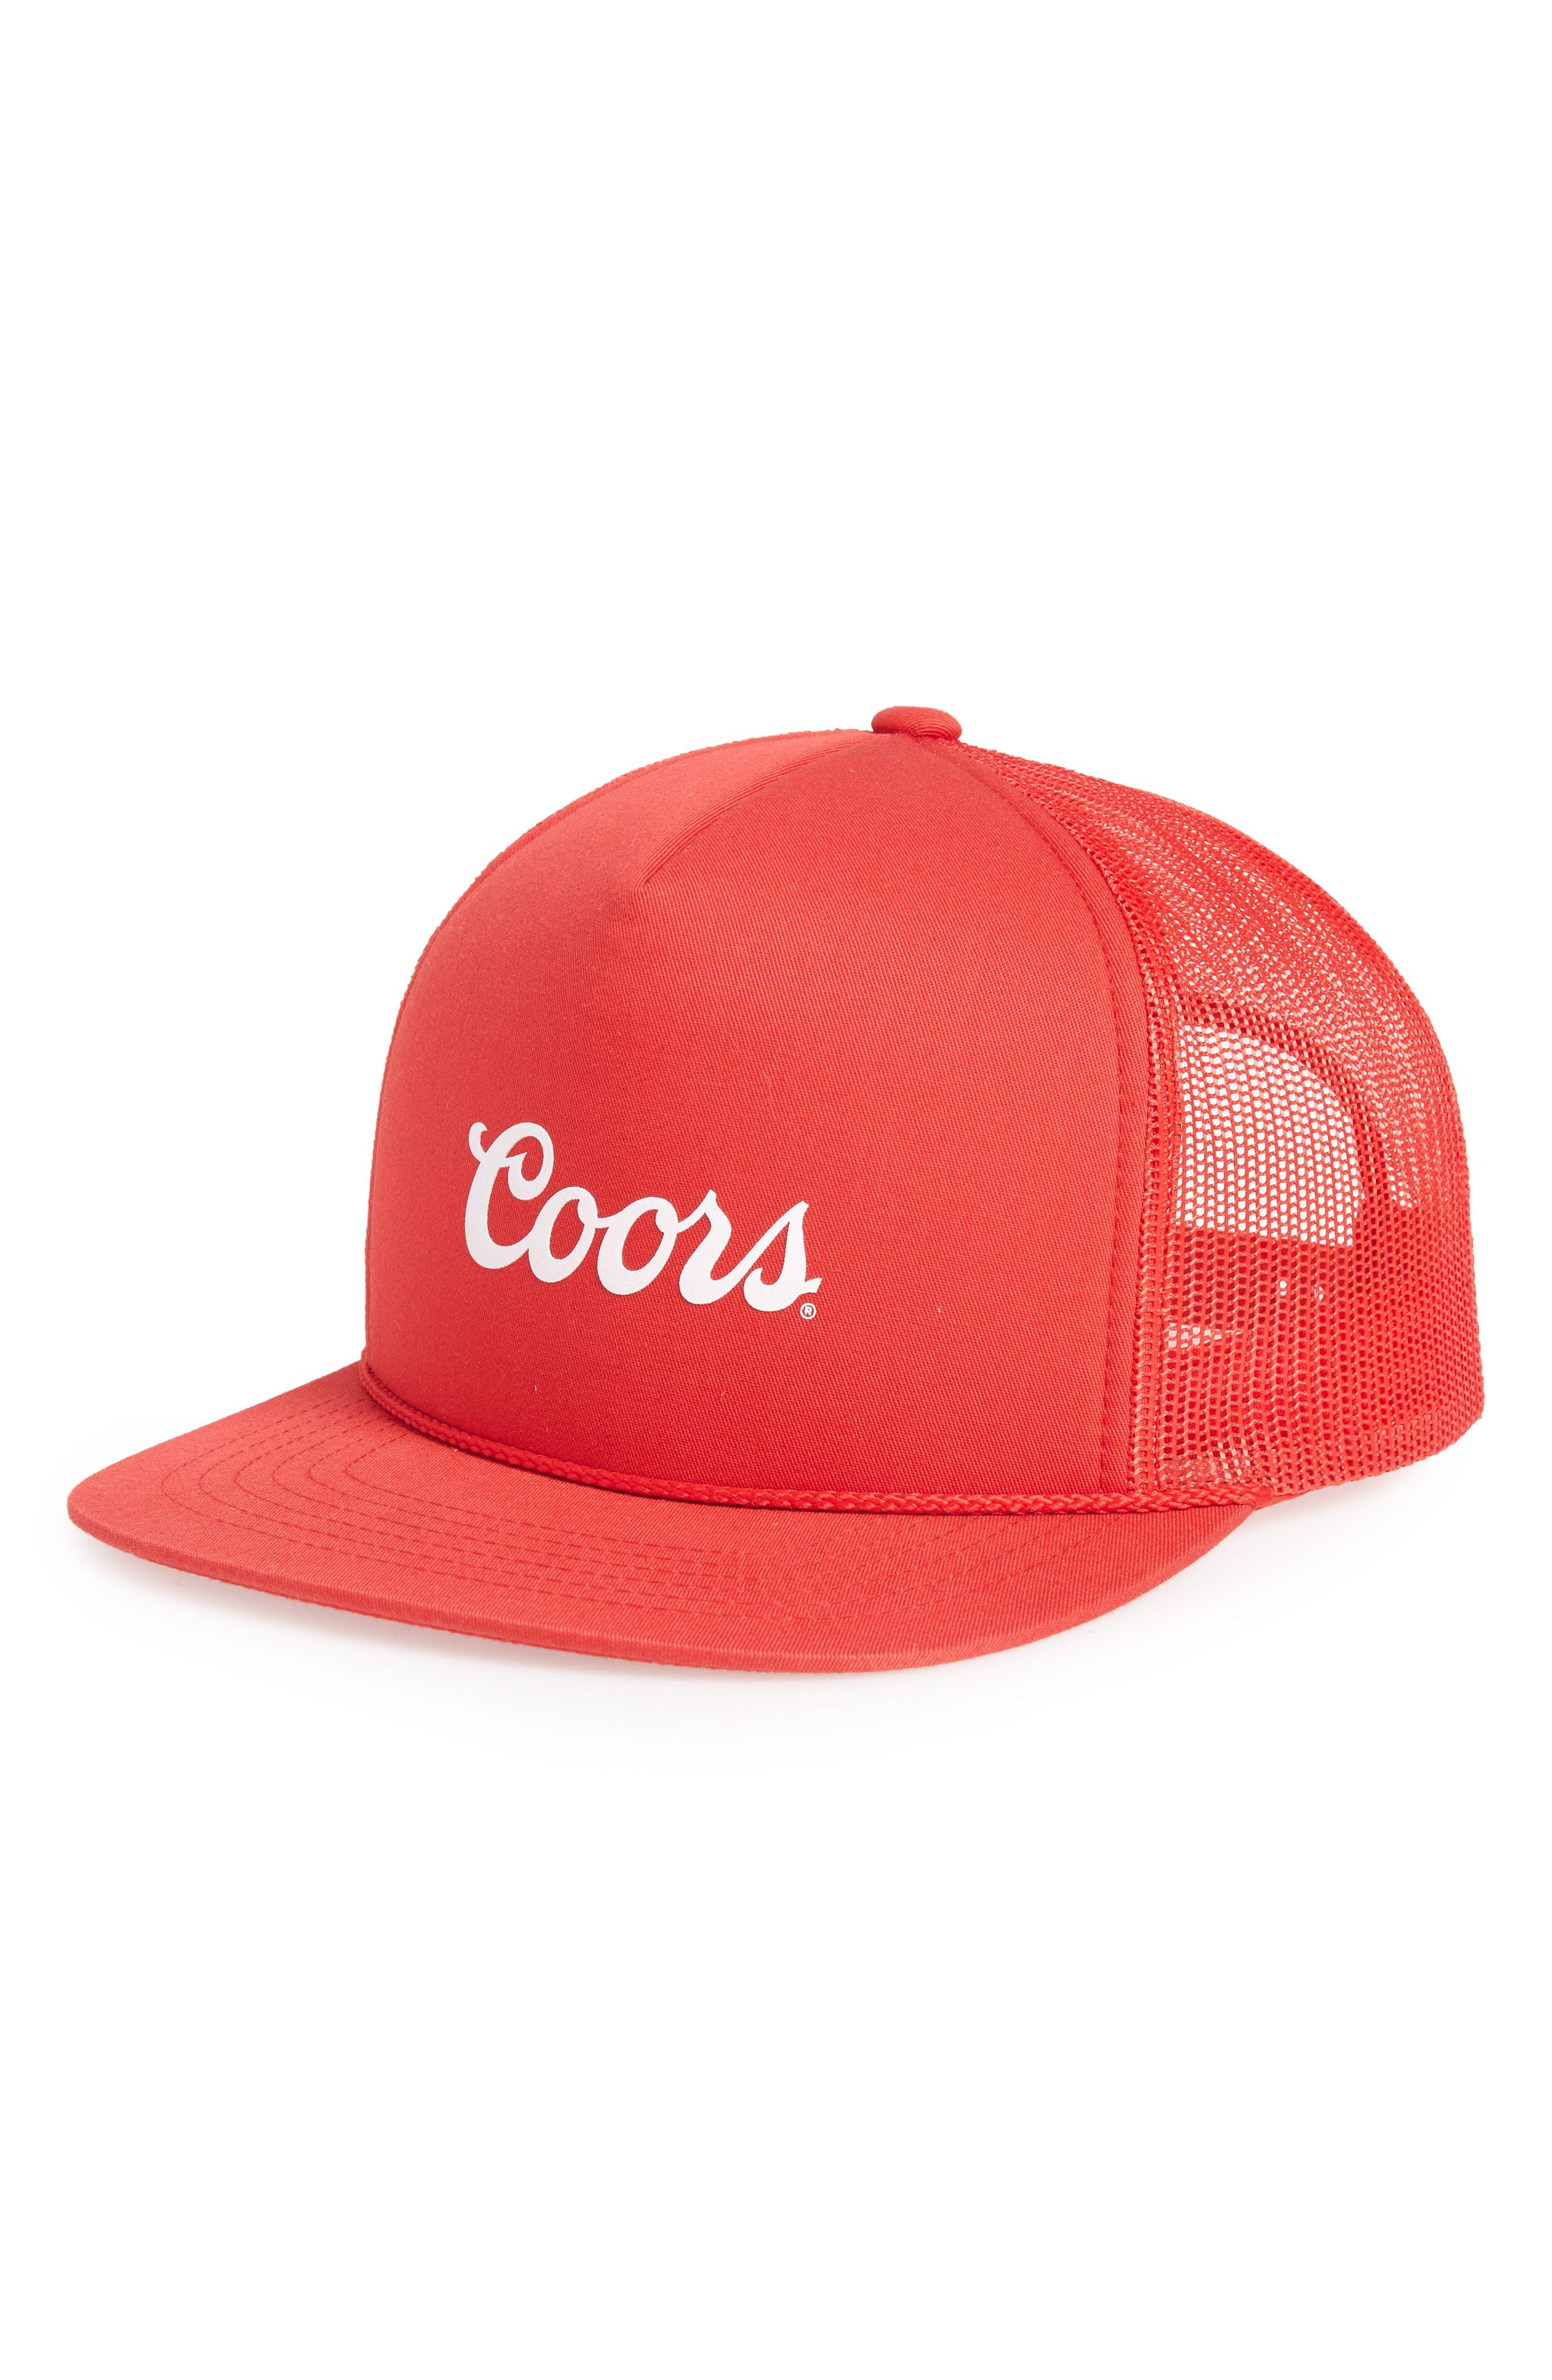 e03a9938 ... purchase brixton. mens red coors signature trucker hat 6f1d8 ee2cc